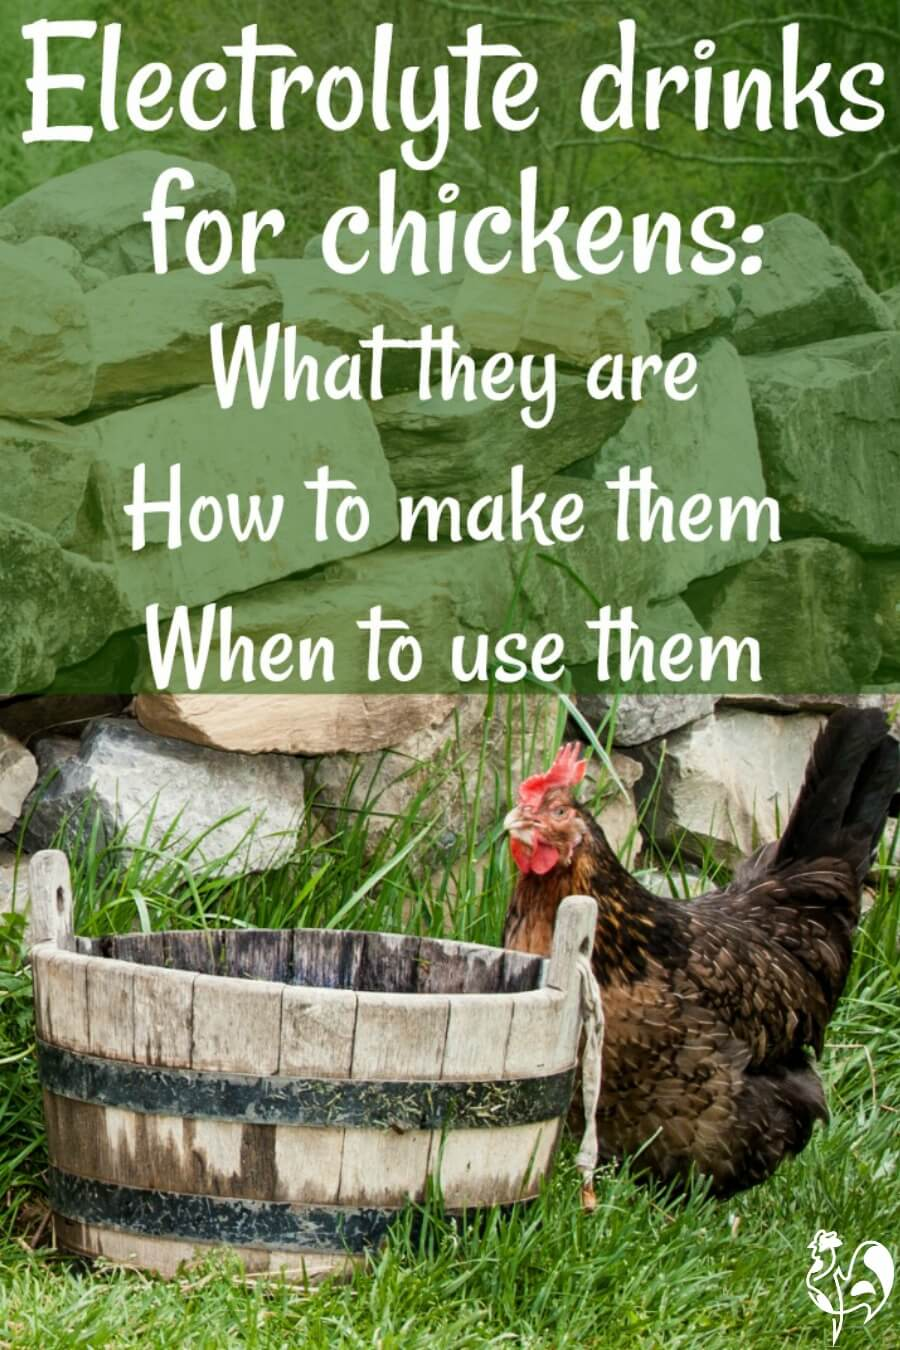 Electrolyte drinks for chickens: how to make them.